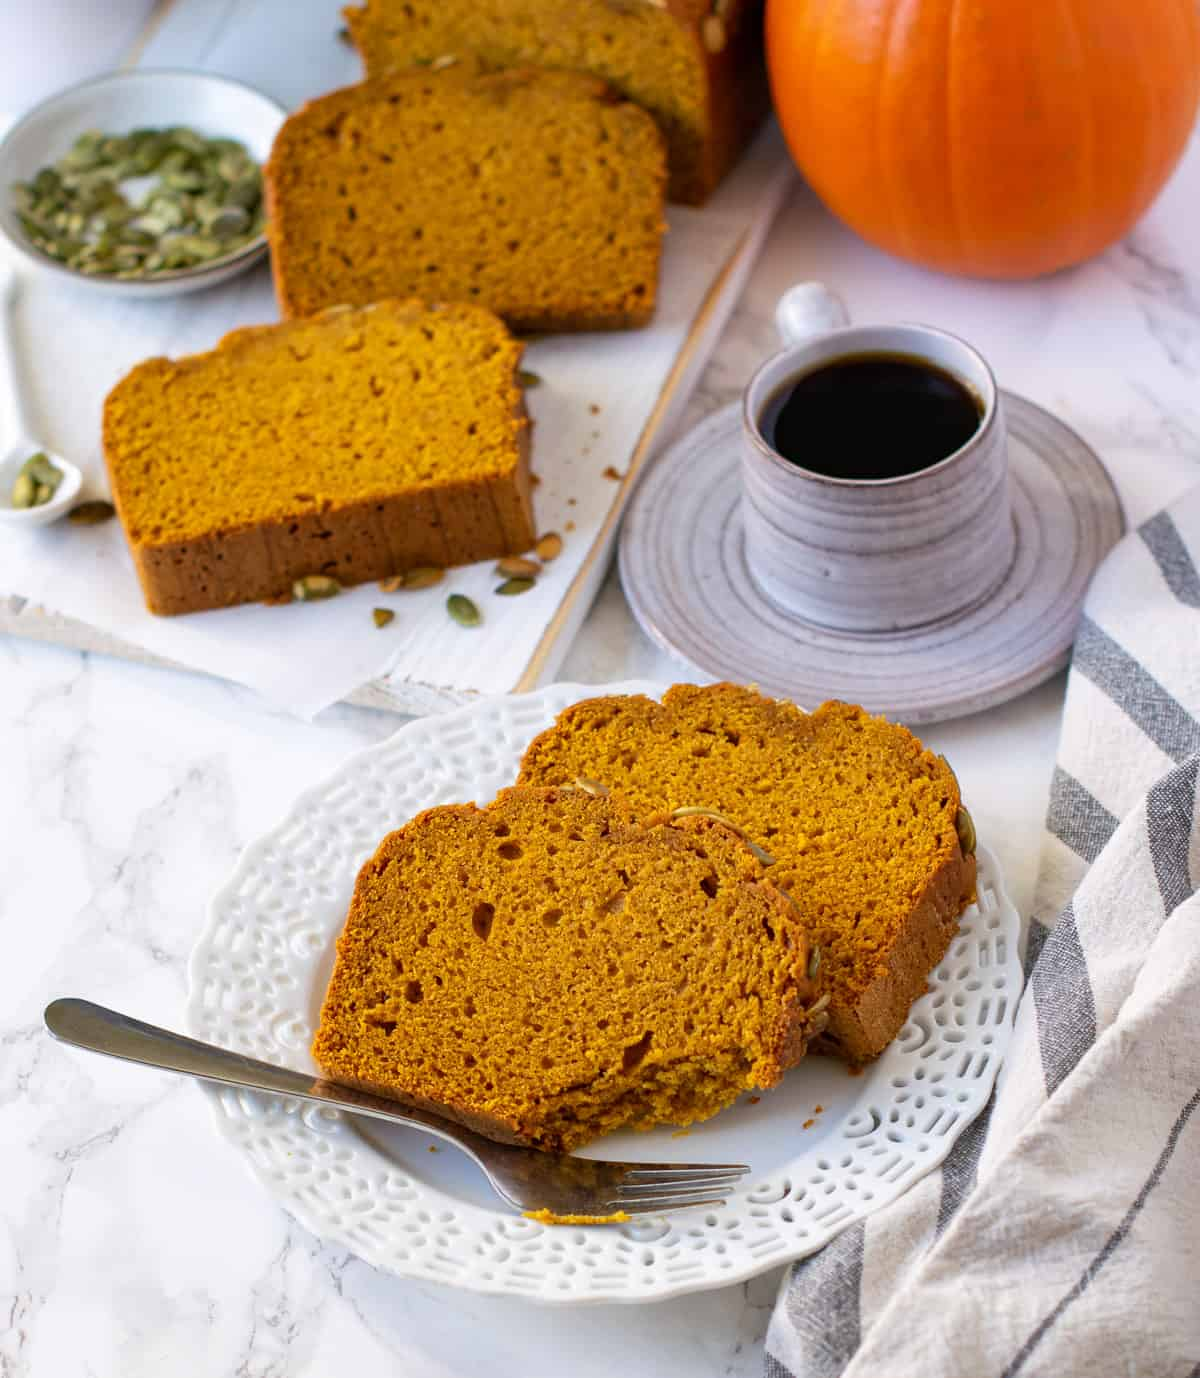 Vegan Pumpkin bread served on a white plate with coffee